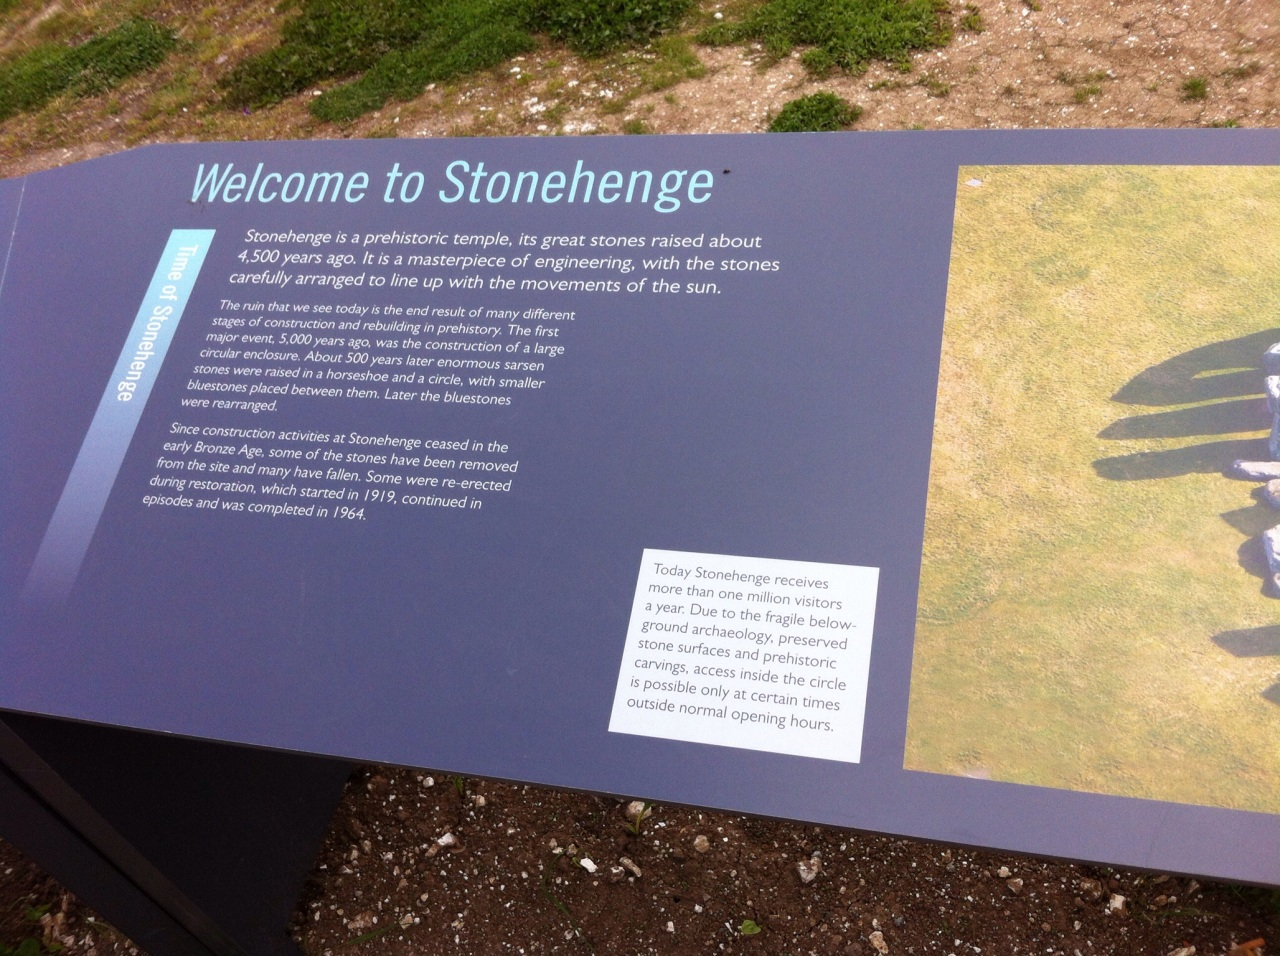 Welcome to Stonehenge. [Photo by me, 2015.]